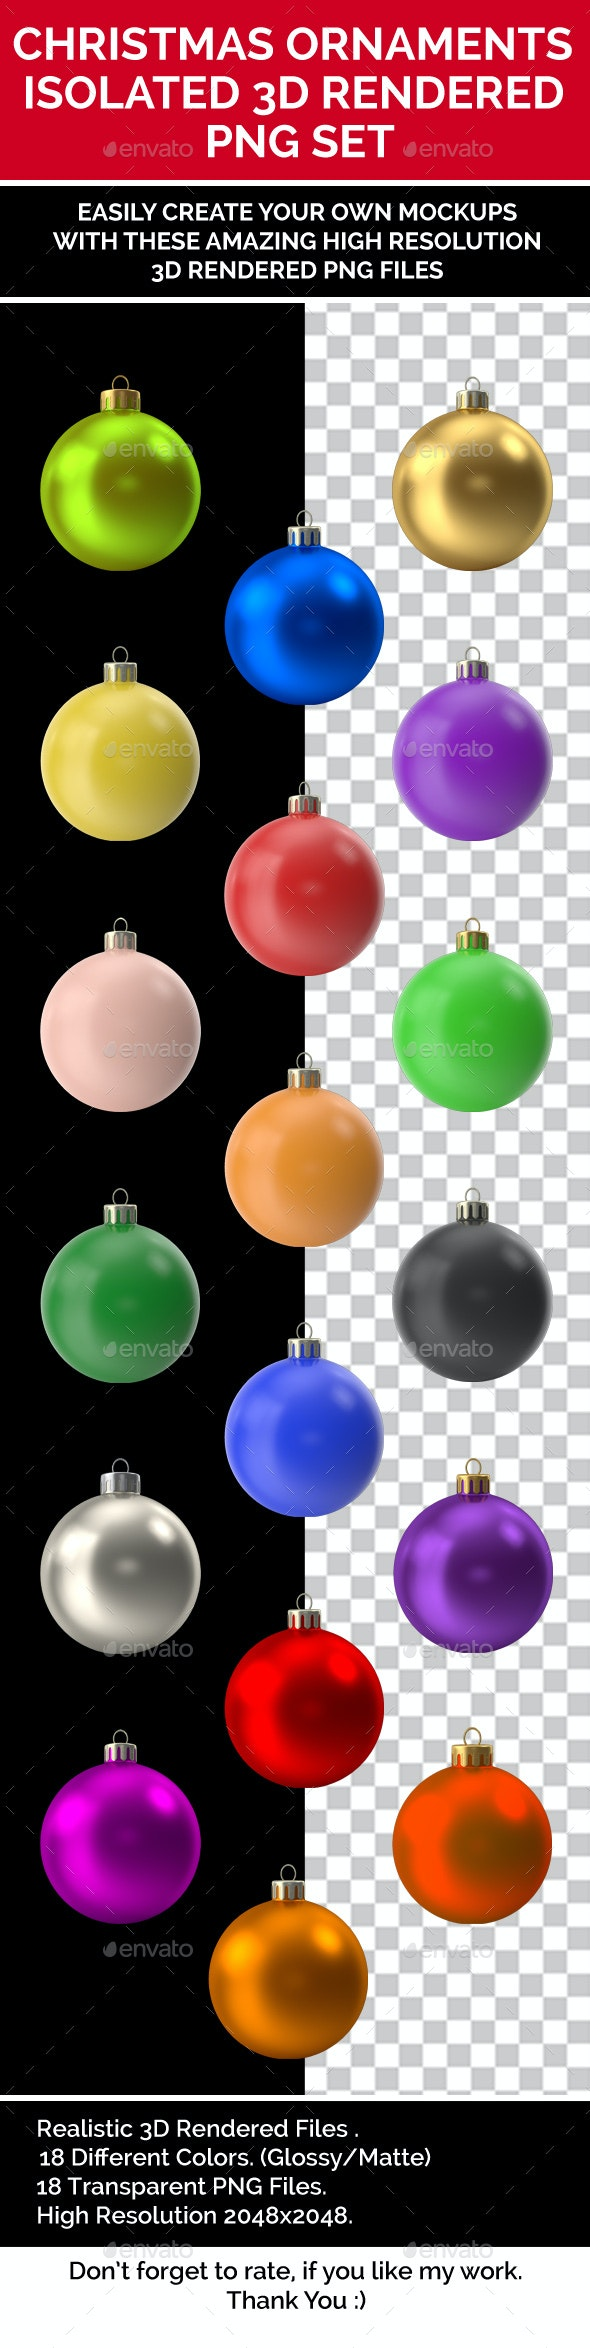 Christmas Ornaments Isolated 3D Rendered PNG Collection Multi color - Objects 3D Renders